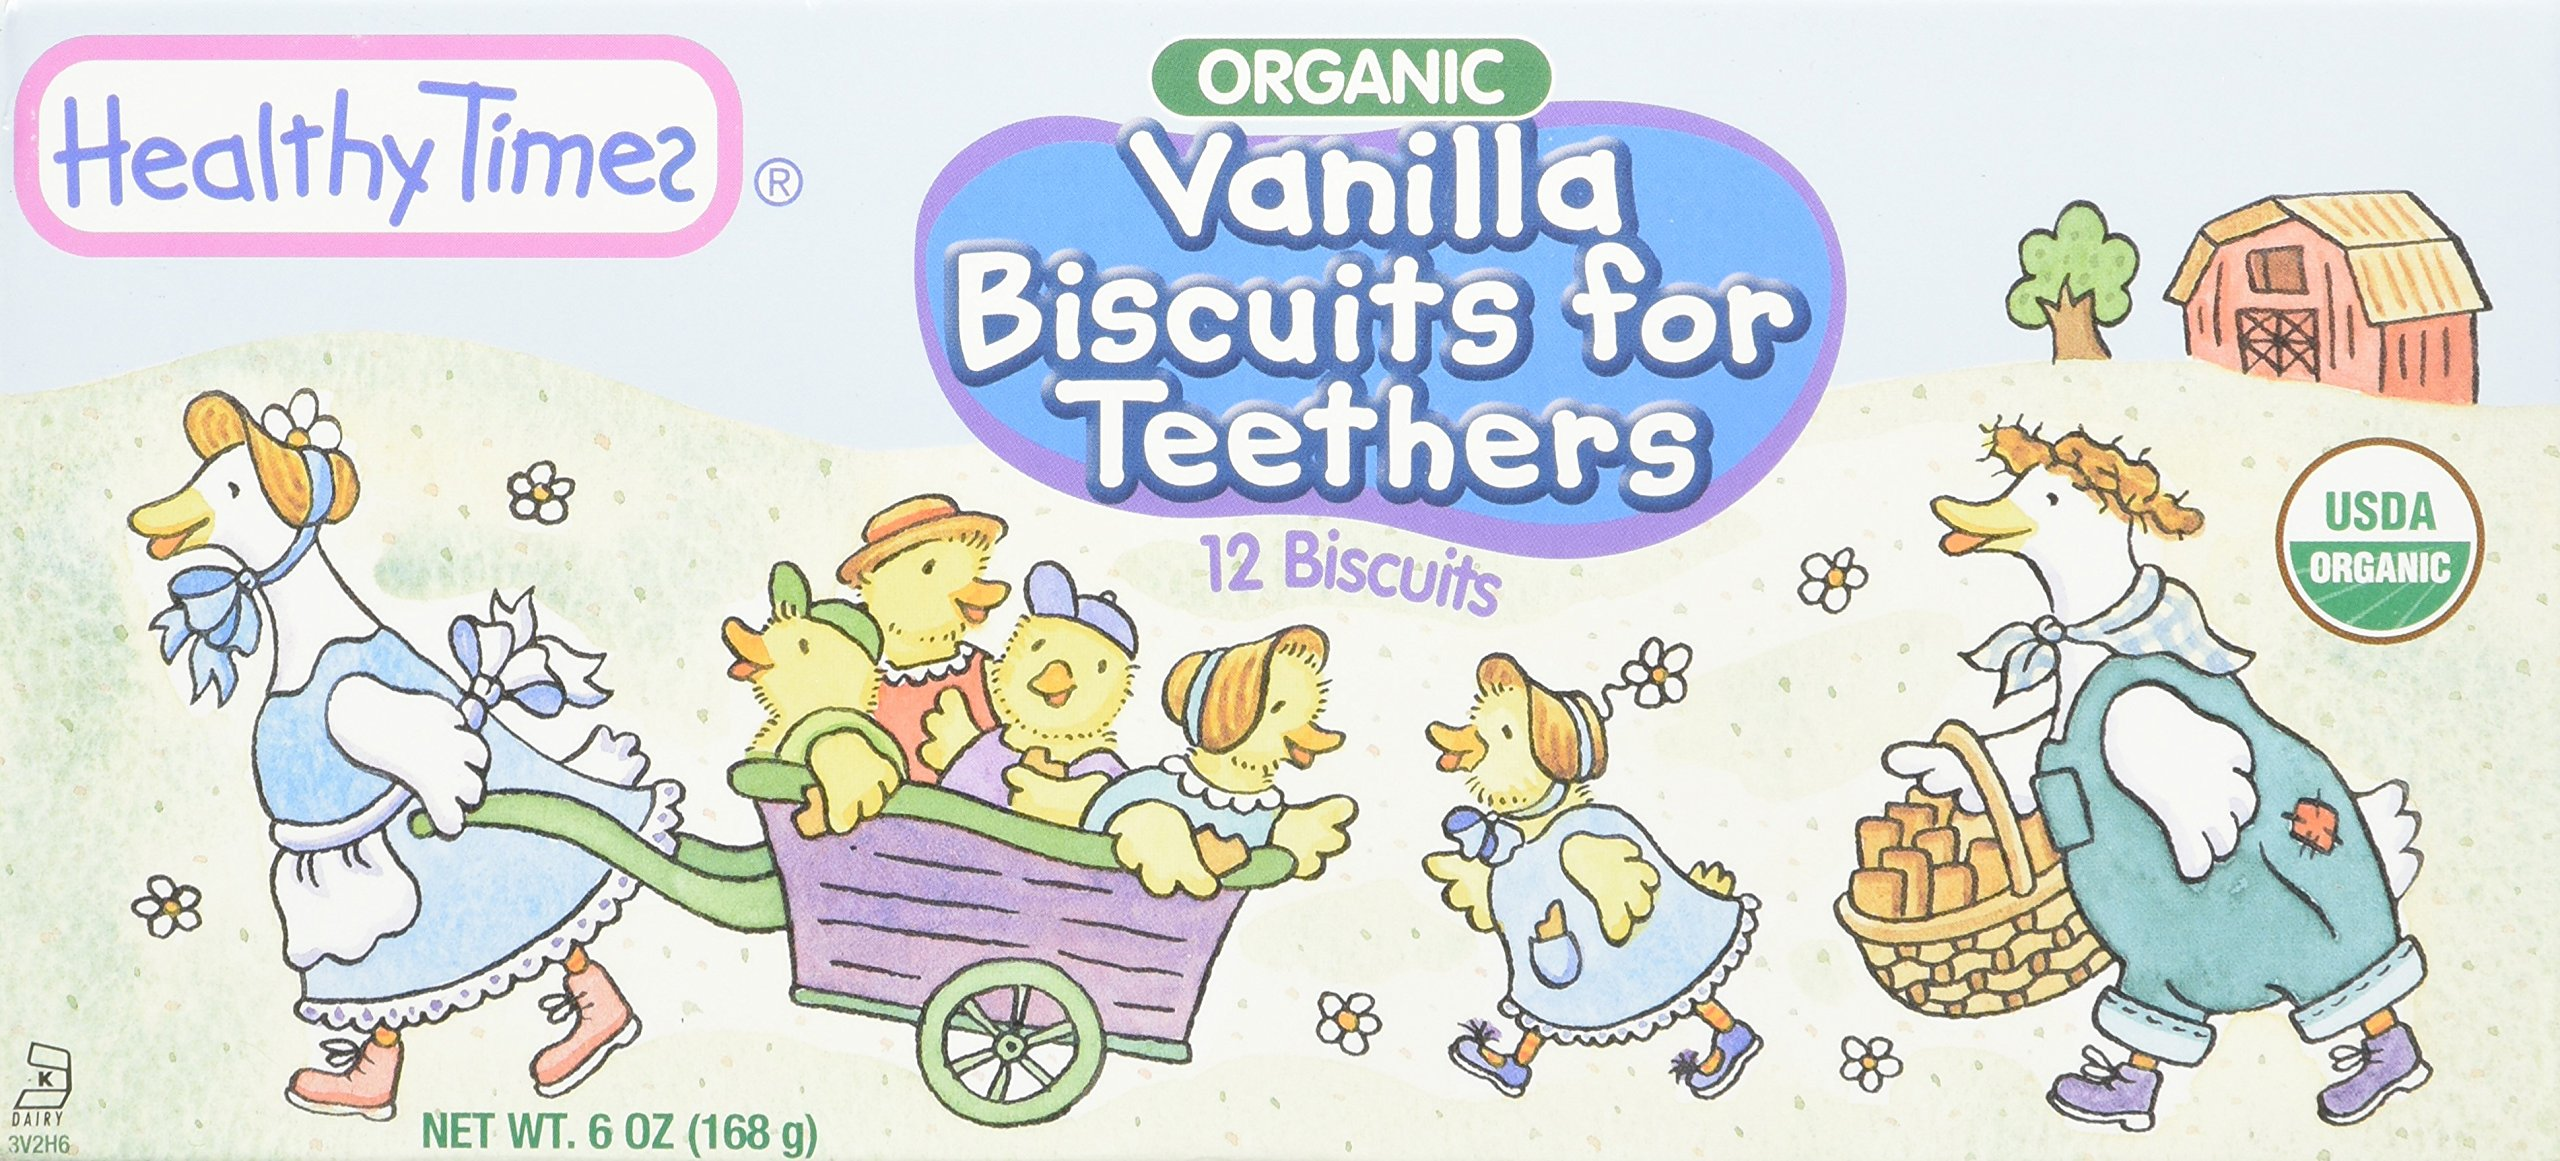 Healthy Times Organic Vanilla Biscuits for Teethers, 6 Ounce by Healthy Times